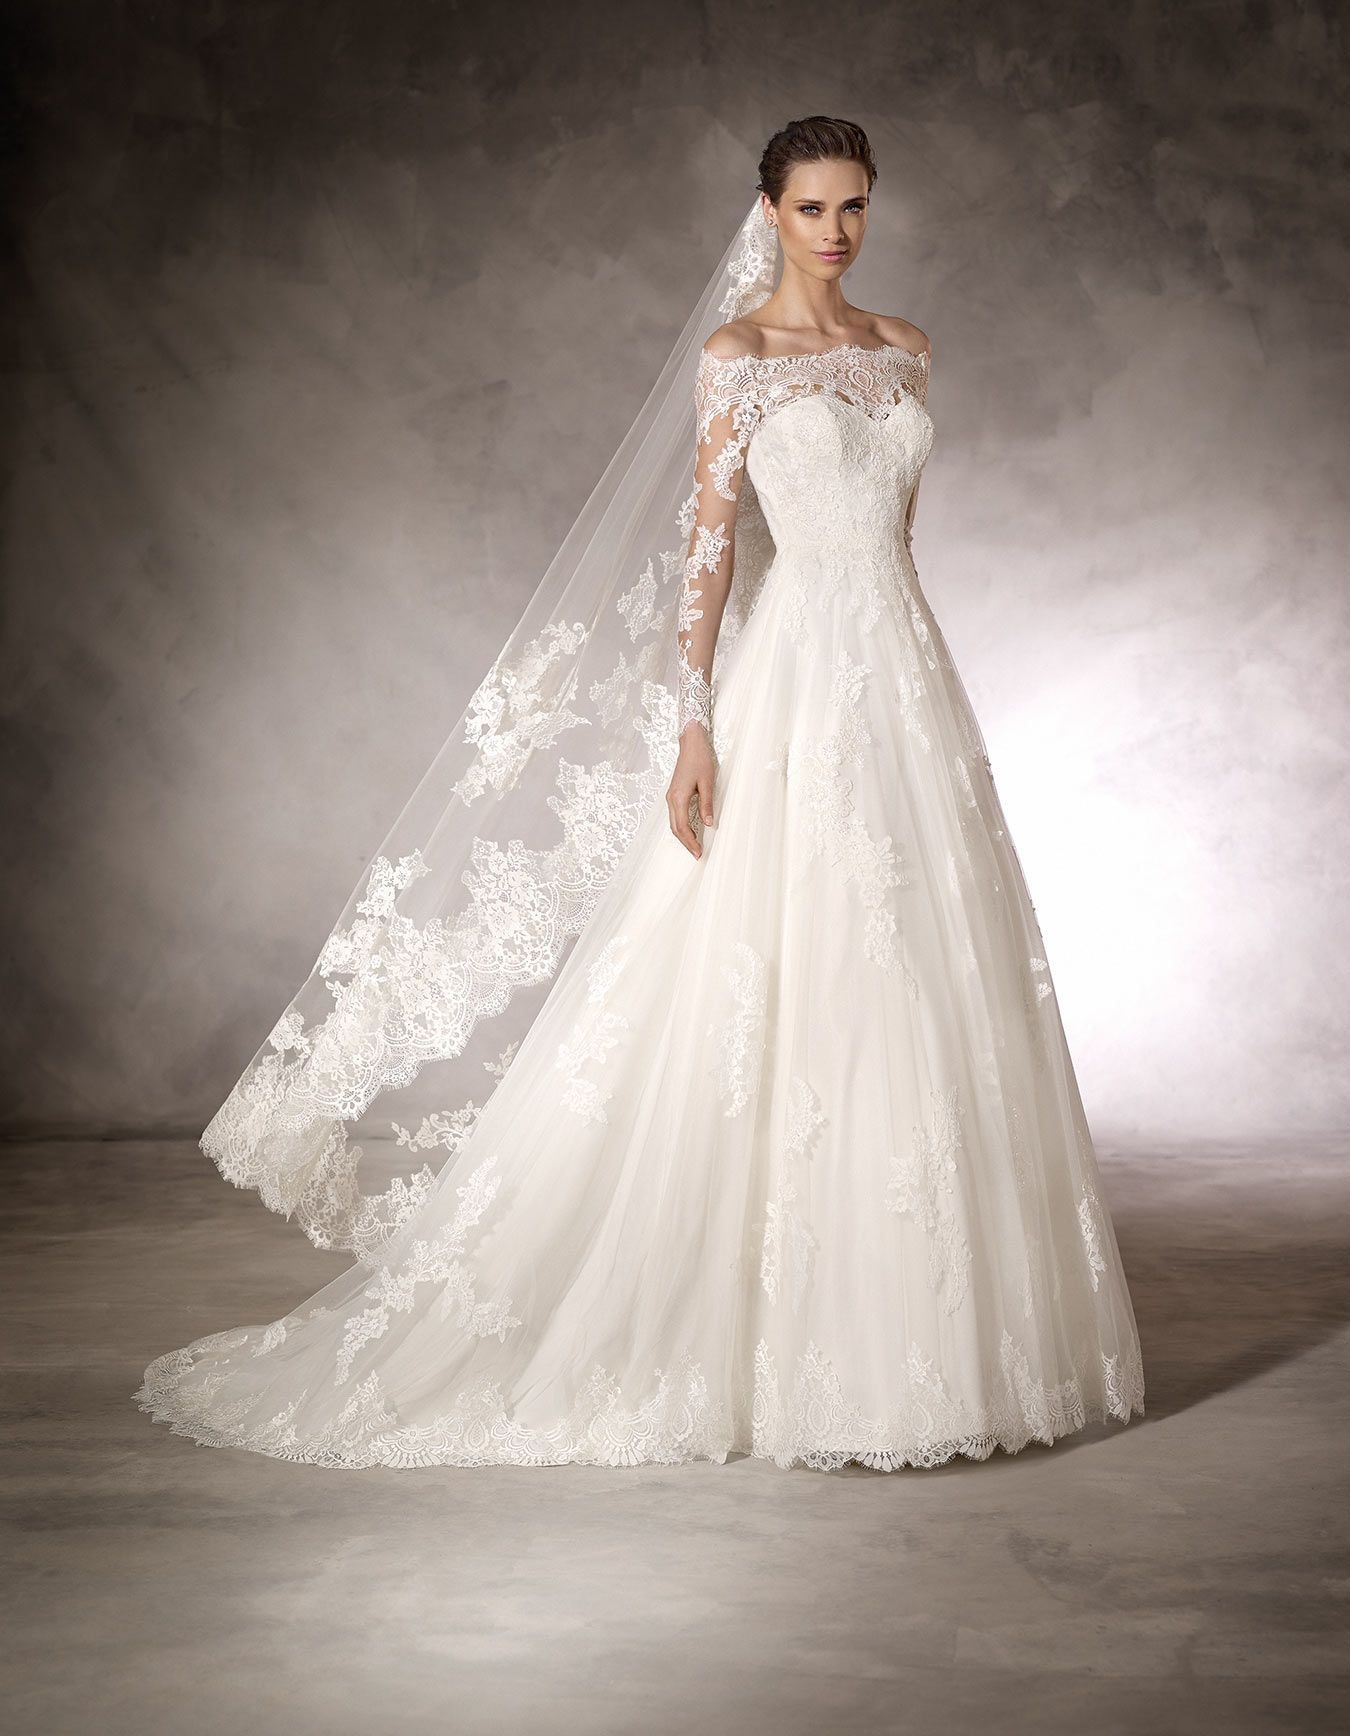 Ball gown wedding dress with sleeves  Kasumi  Pronovias  Soft lace ball gown wedding dress with